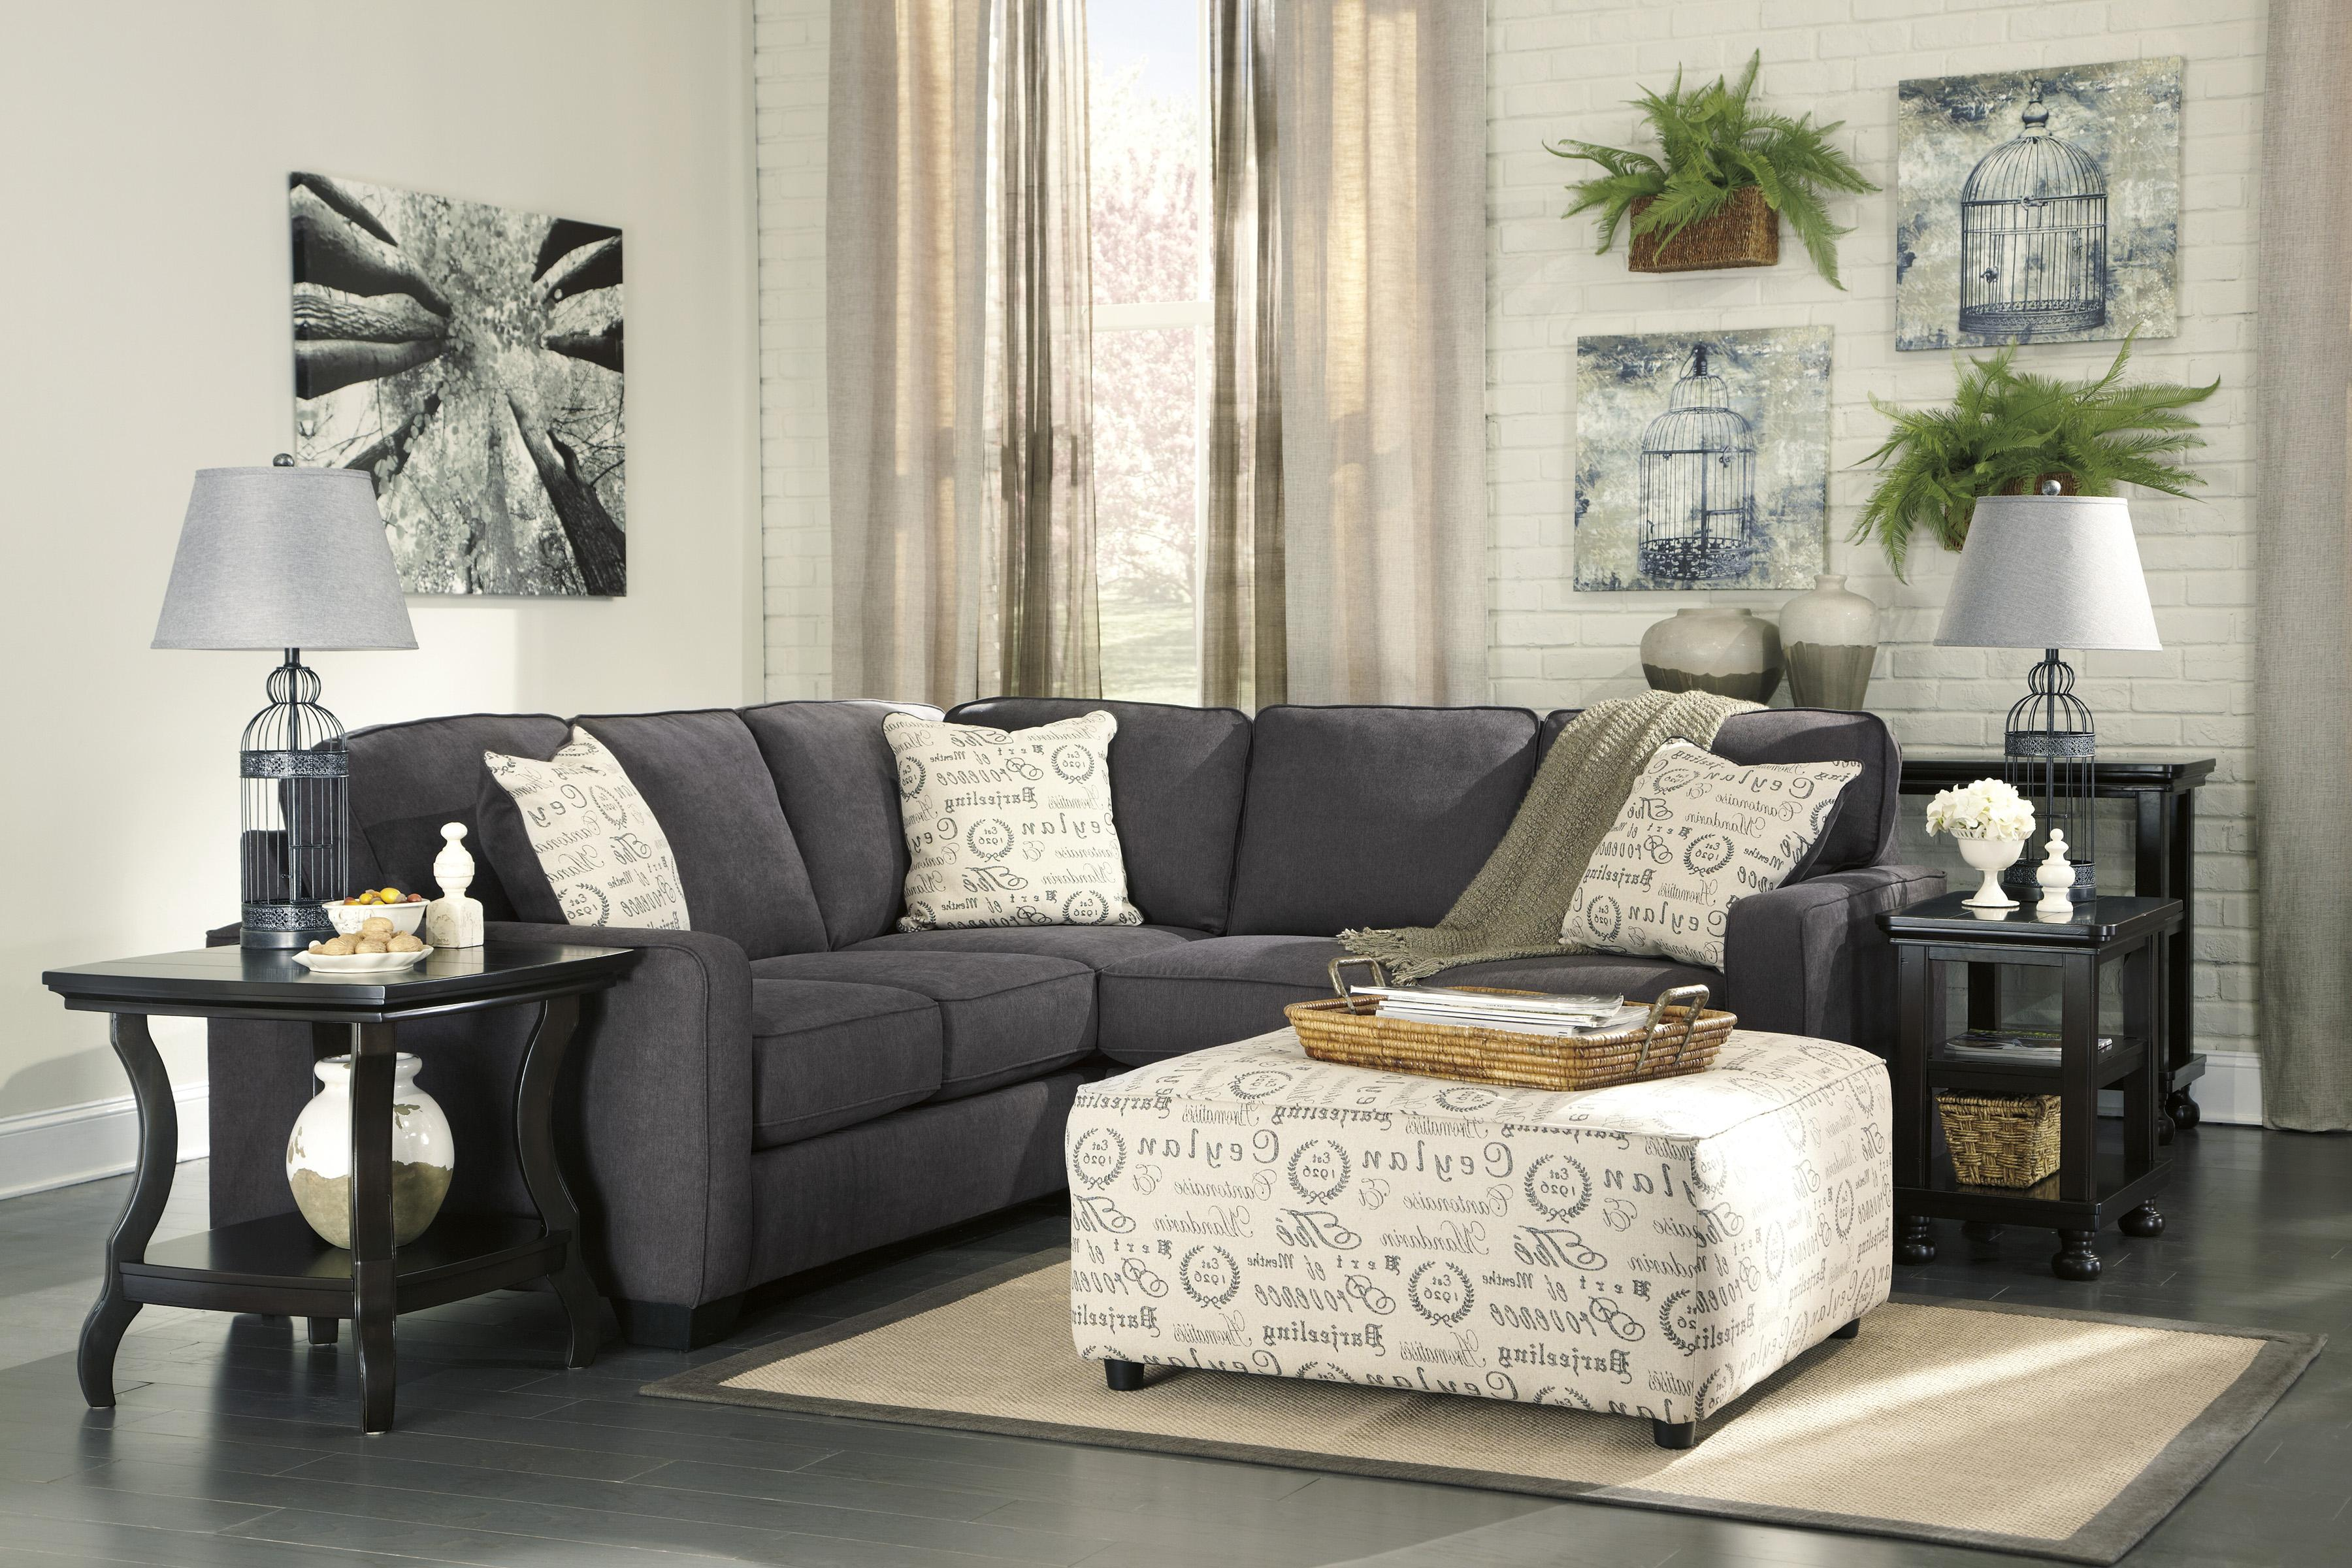 Signature design by ashley alenya charcoal 2 piece for Alenya 2 piece sofa sectional in charcoal